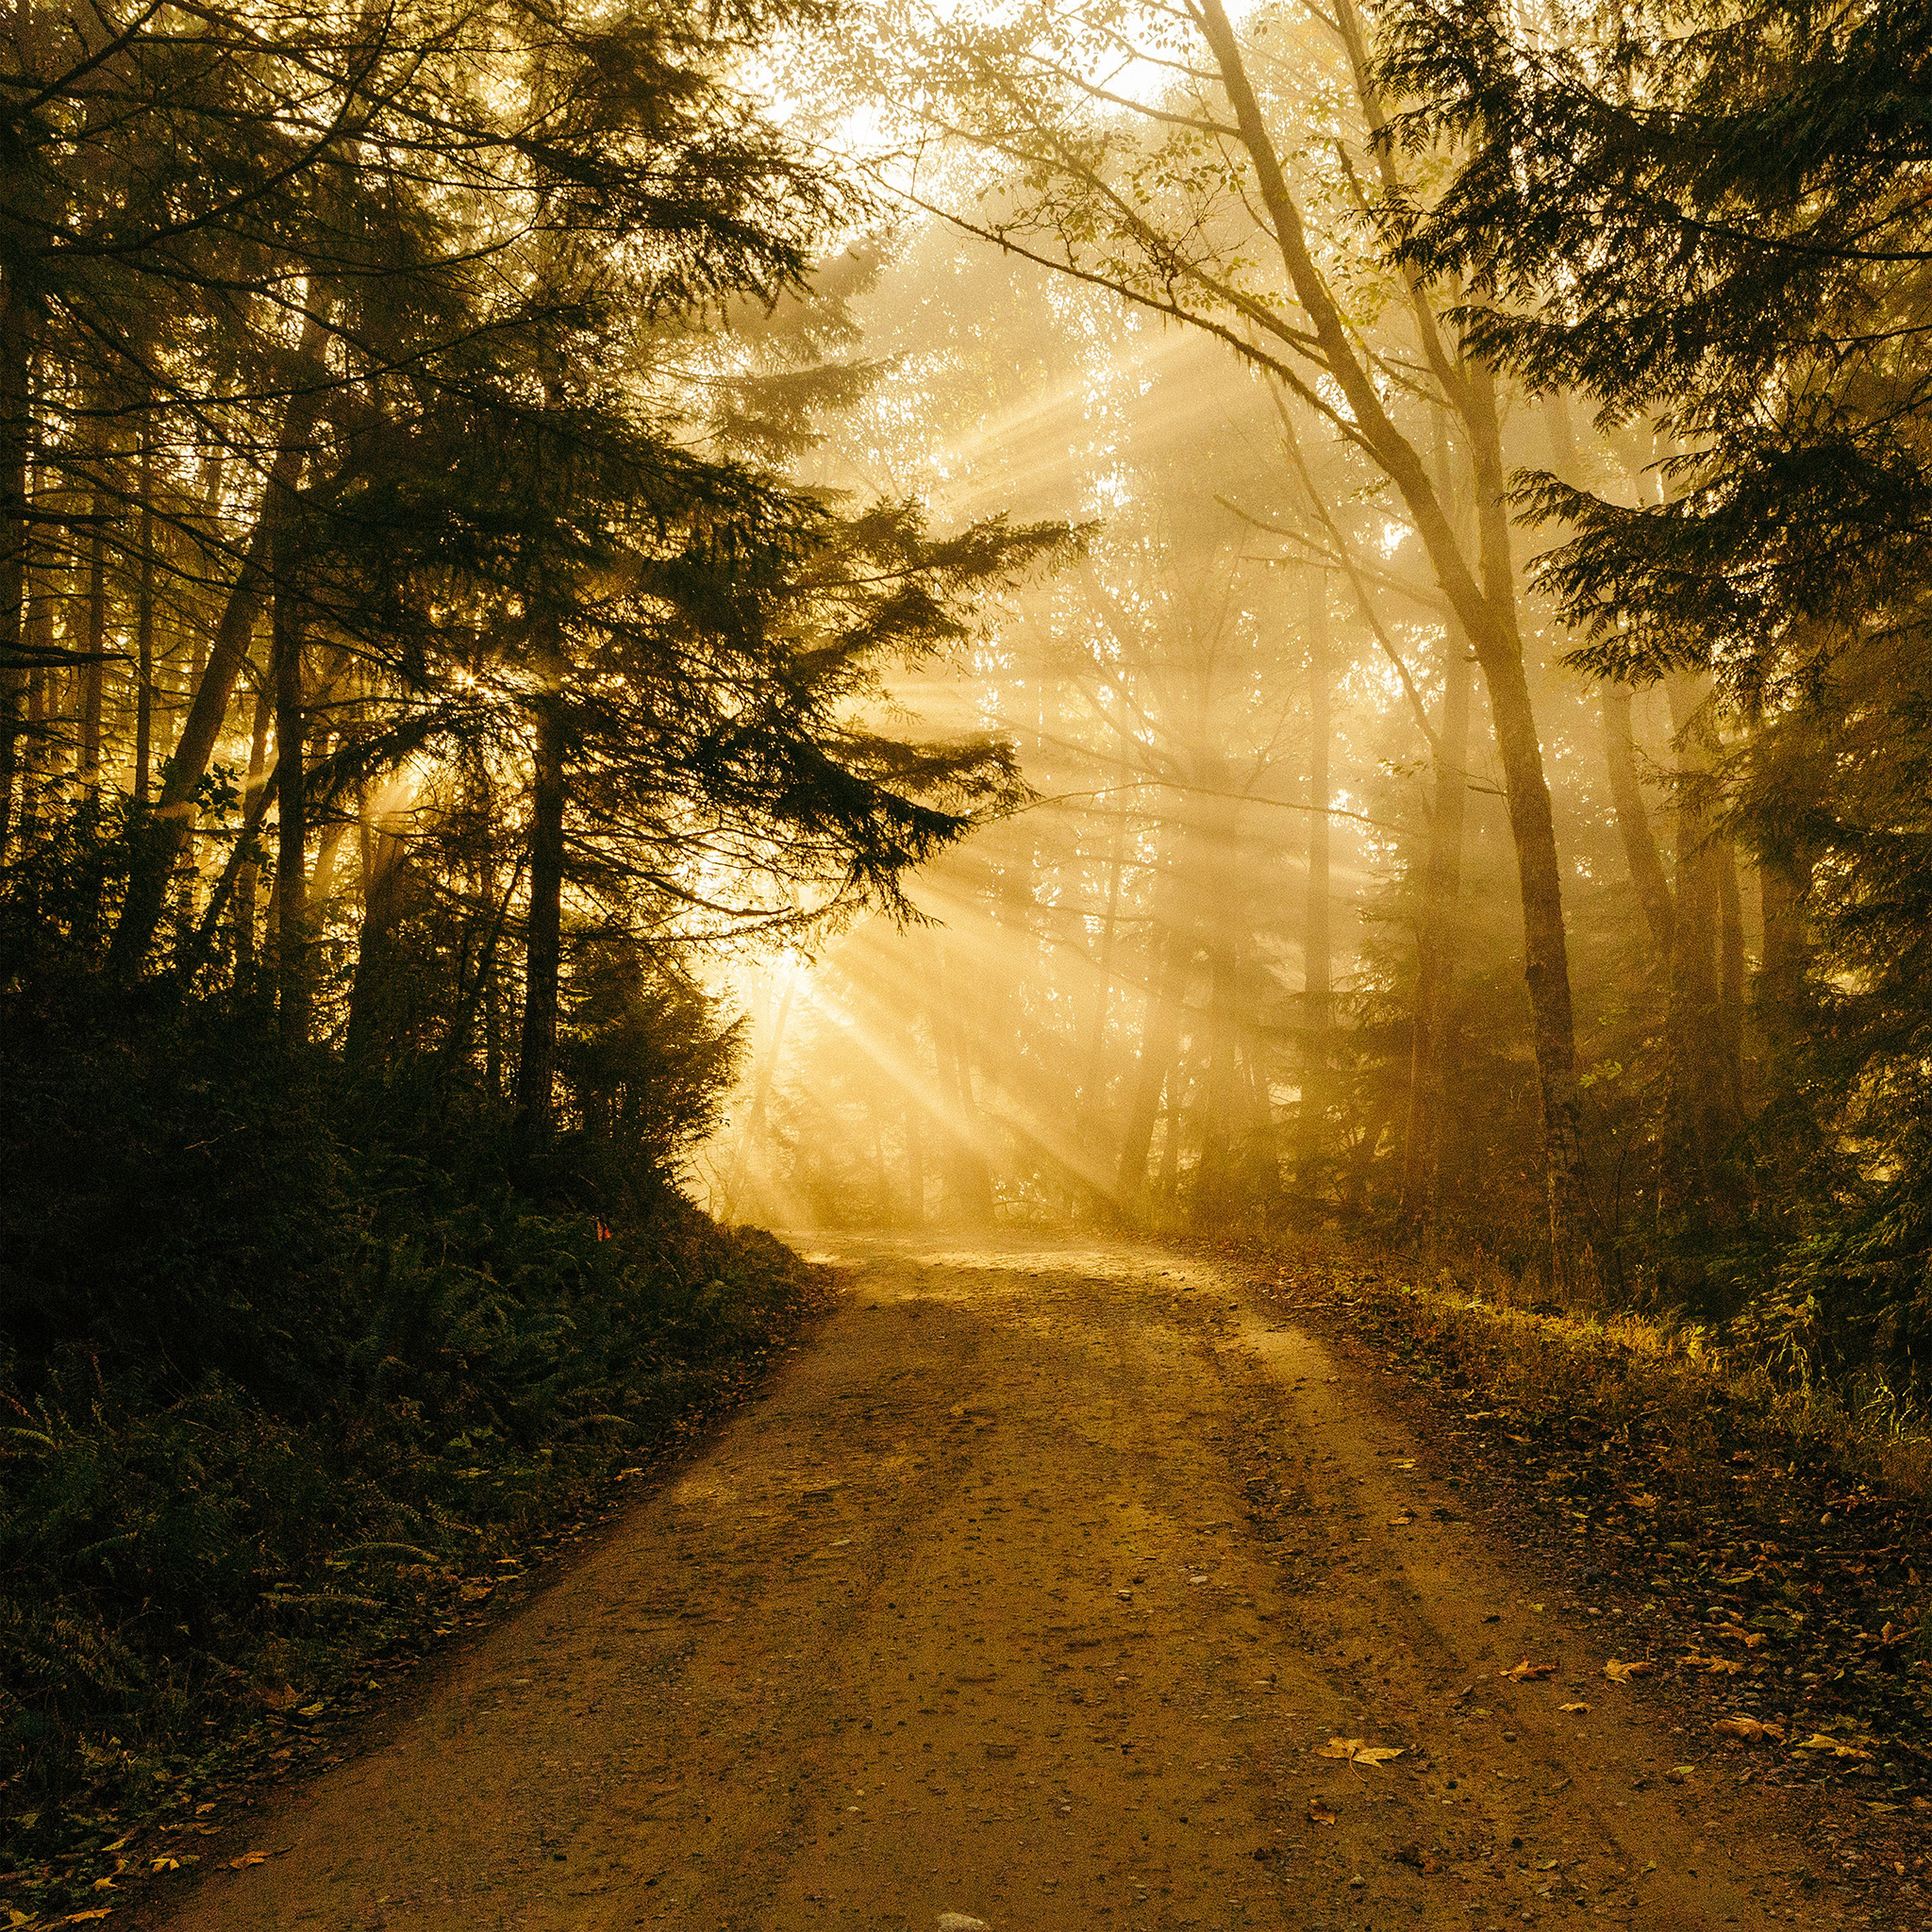 Dark Quote Wallpapers I Love Papers Nh73 Sunny Road Wood Forest Light Tree